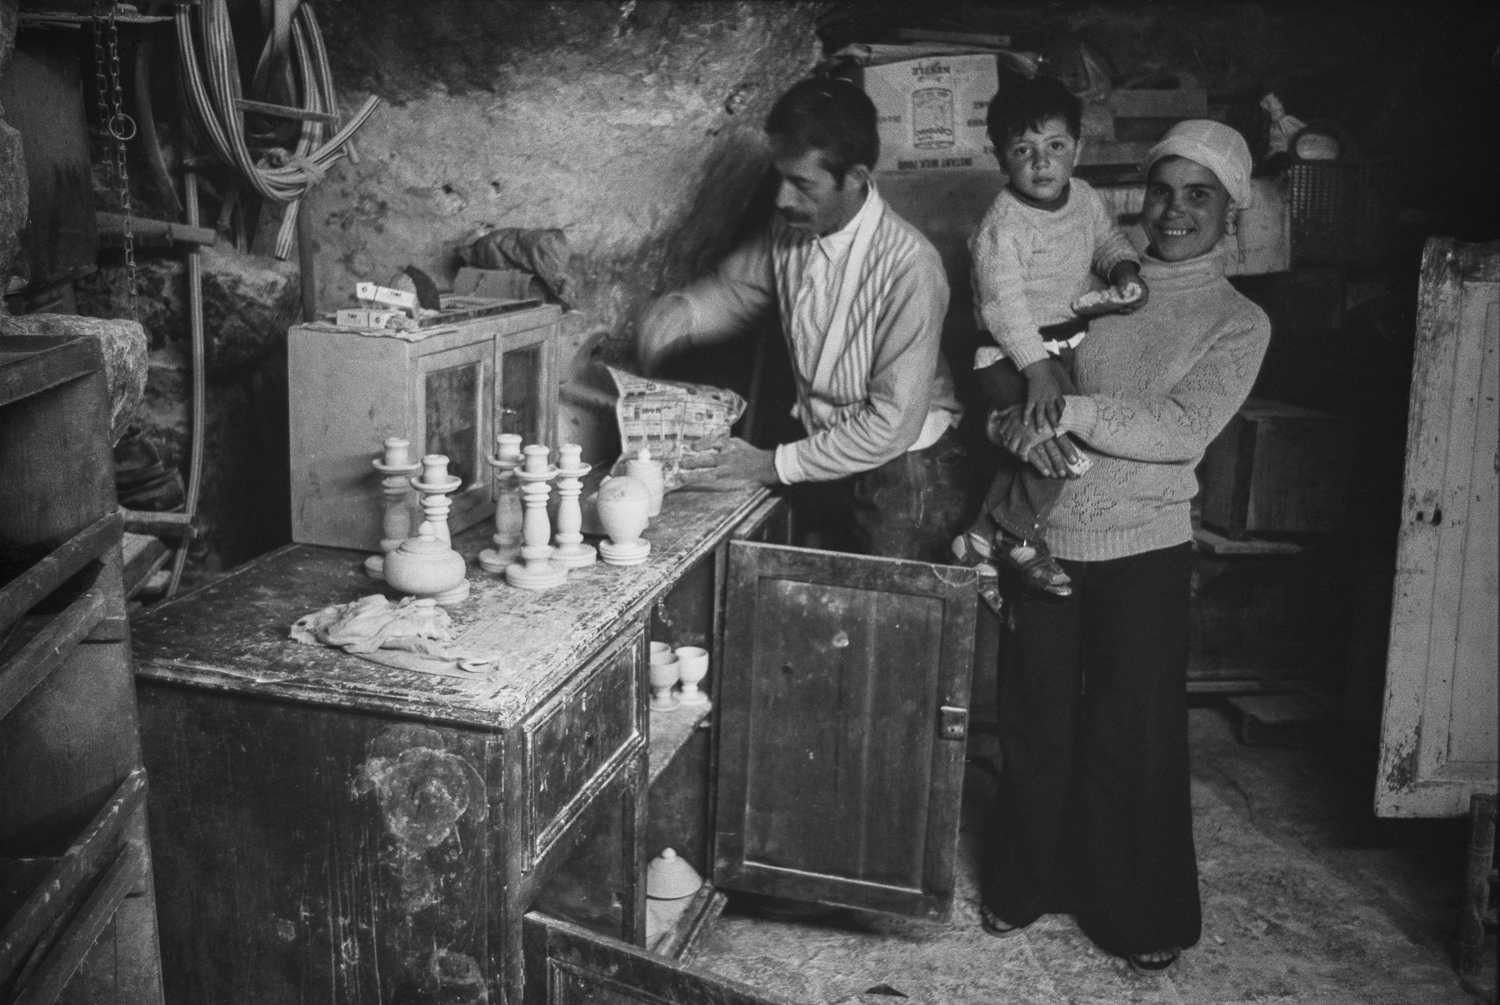 Stoneworker and family, Bethlehem - 1978